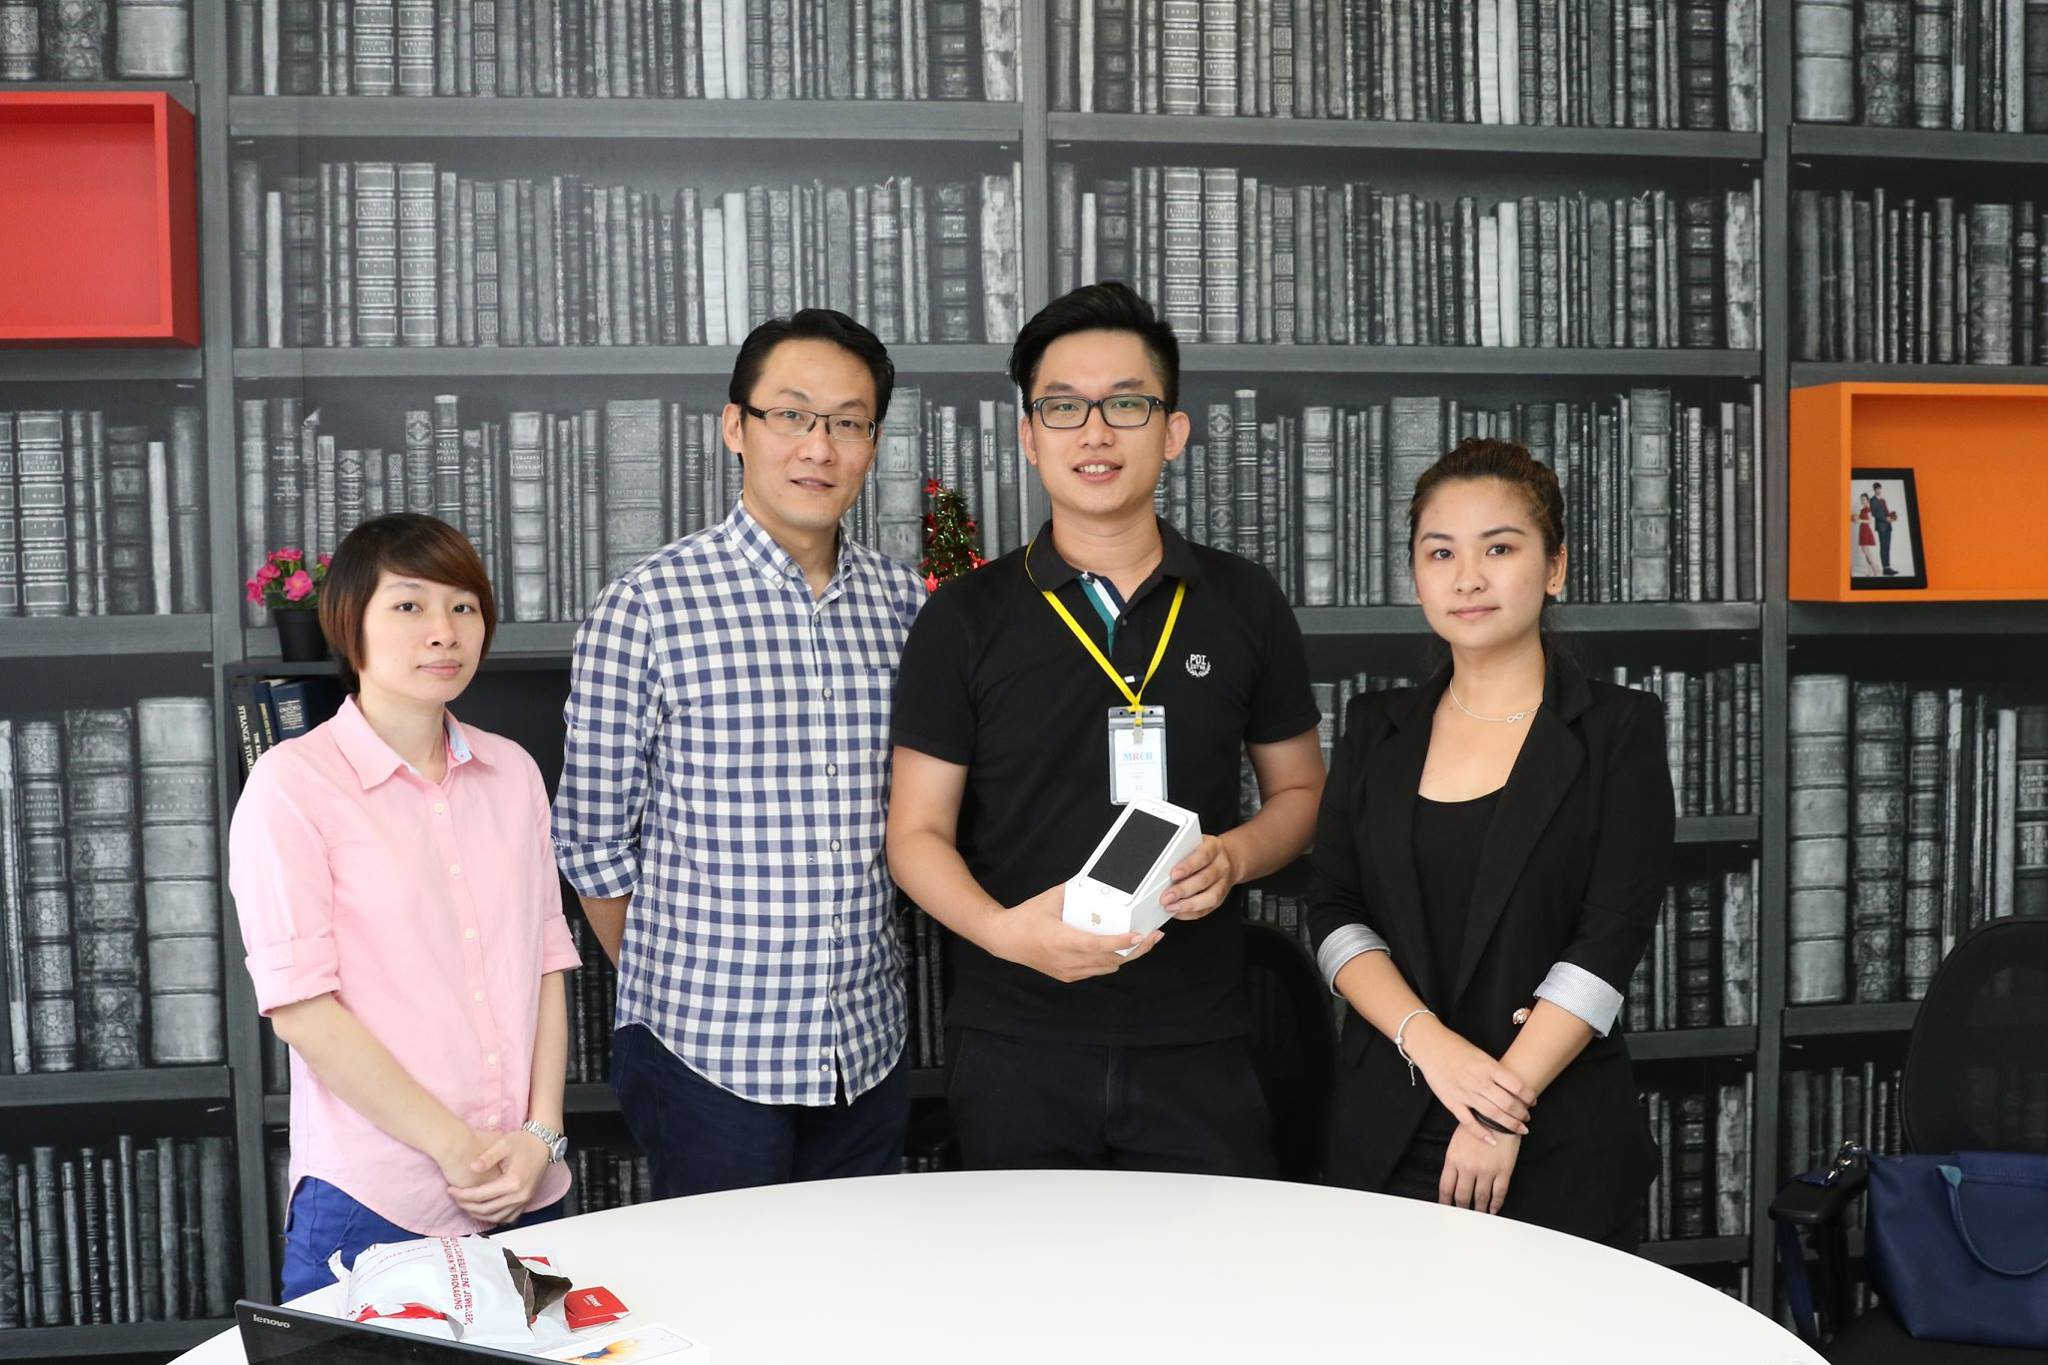 11street team with Alans (second from right) and his brand new phone.